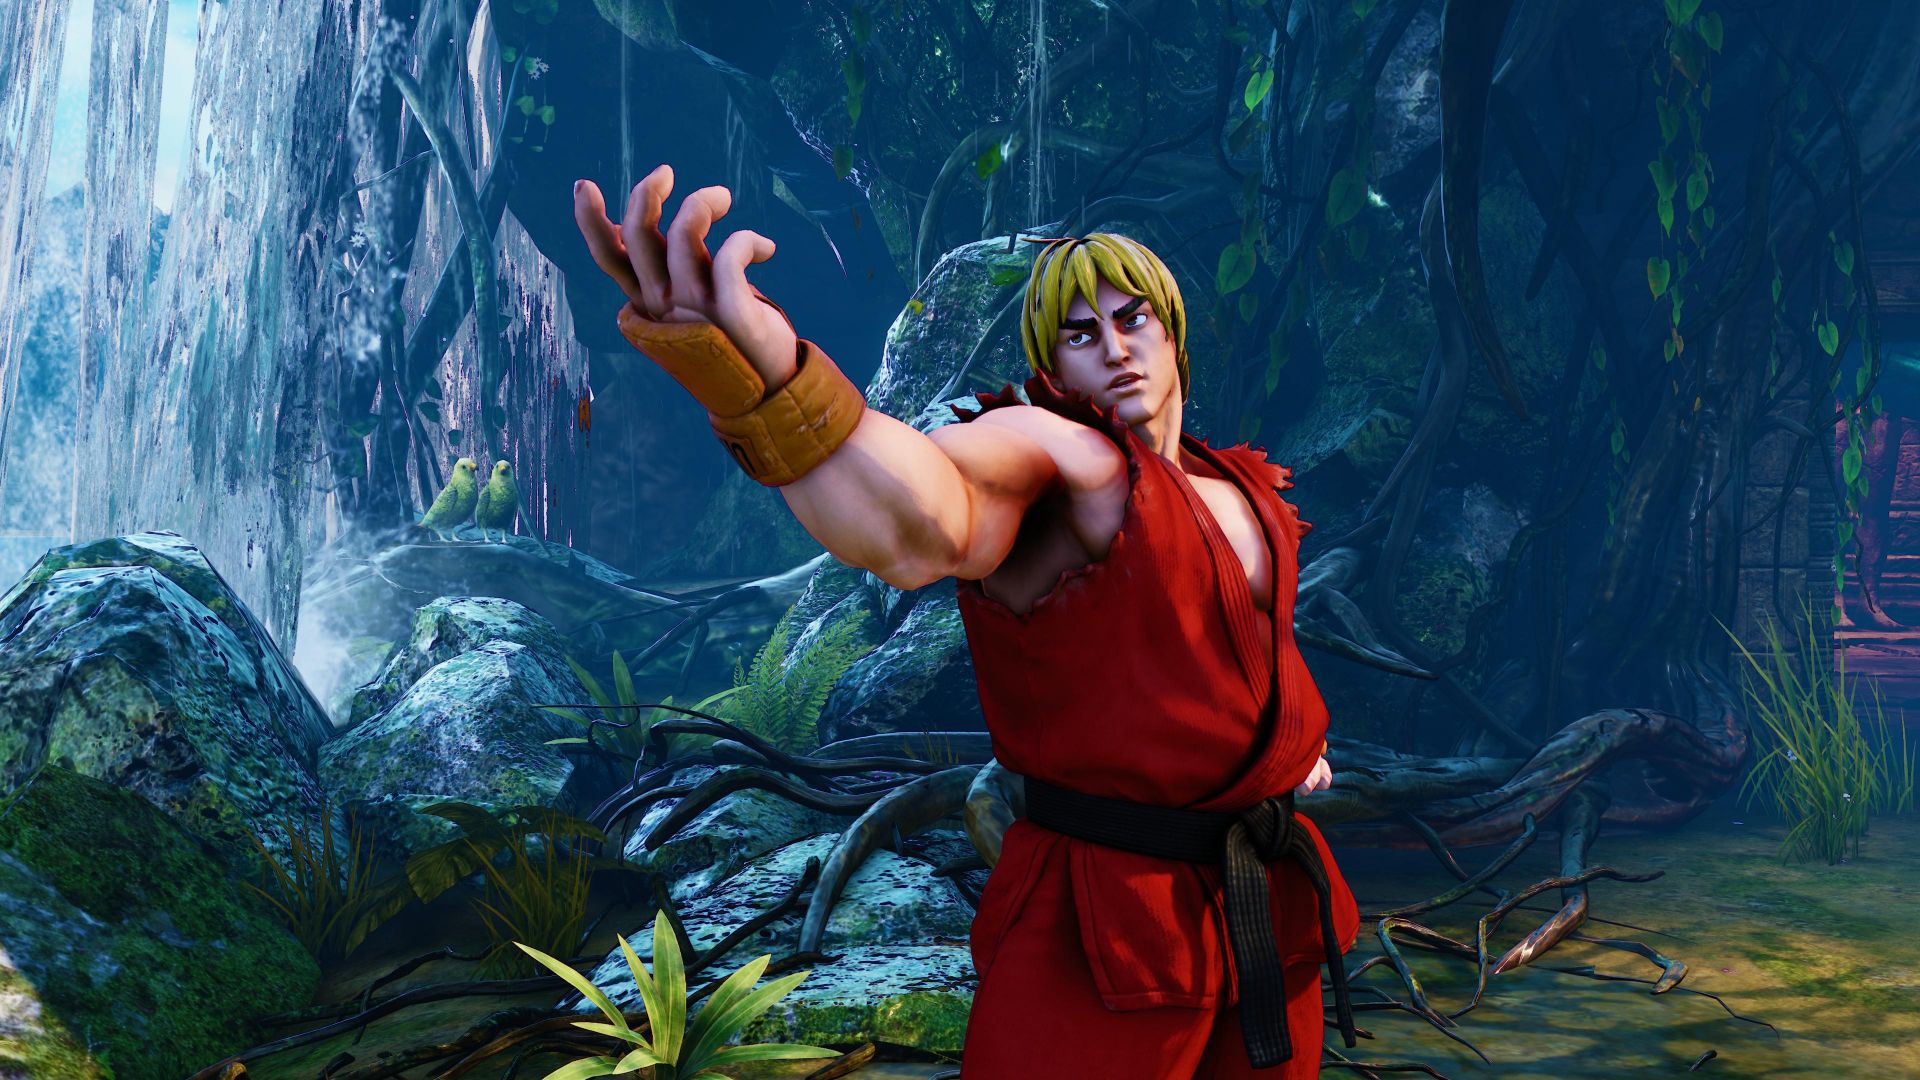 Street Fighter 5, Кен, Лучшие игры, фентези, ПК, PS4, Street Fighter 5, KEN, Best Games, fantasy, PC, PS4